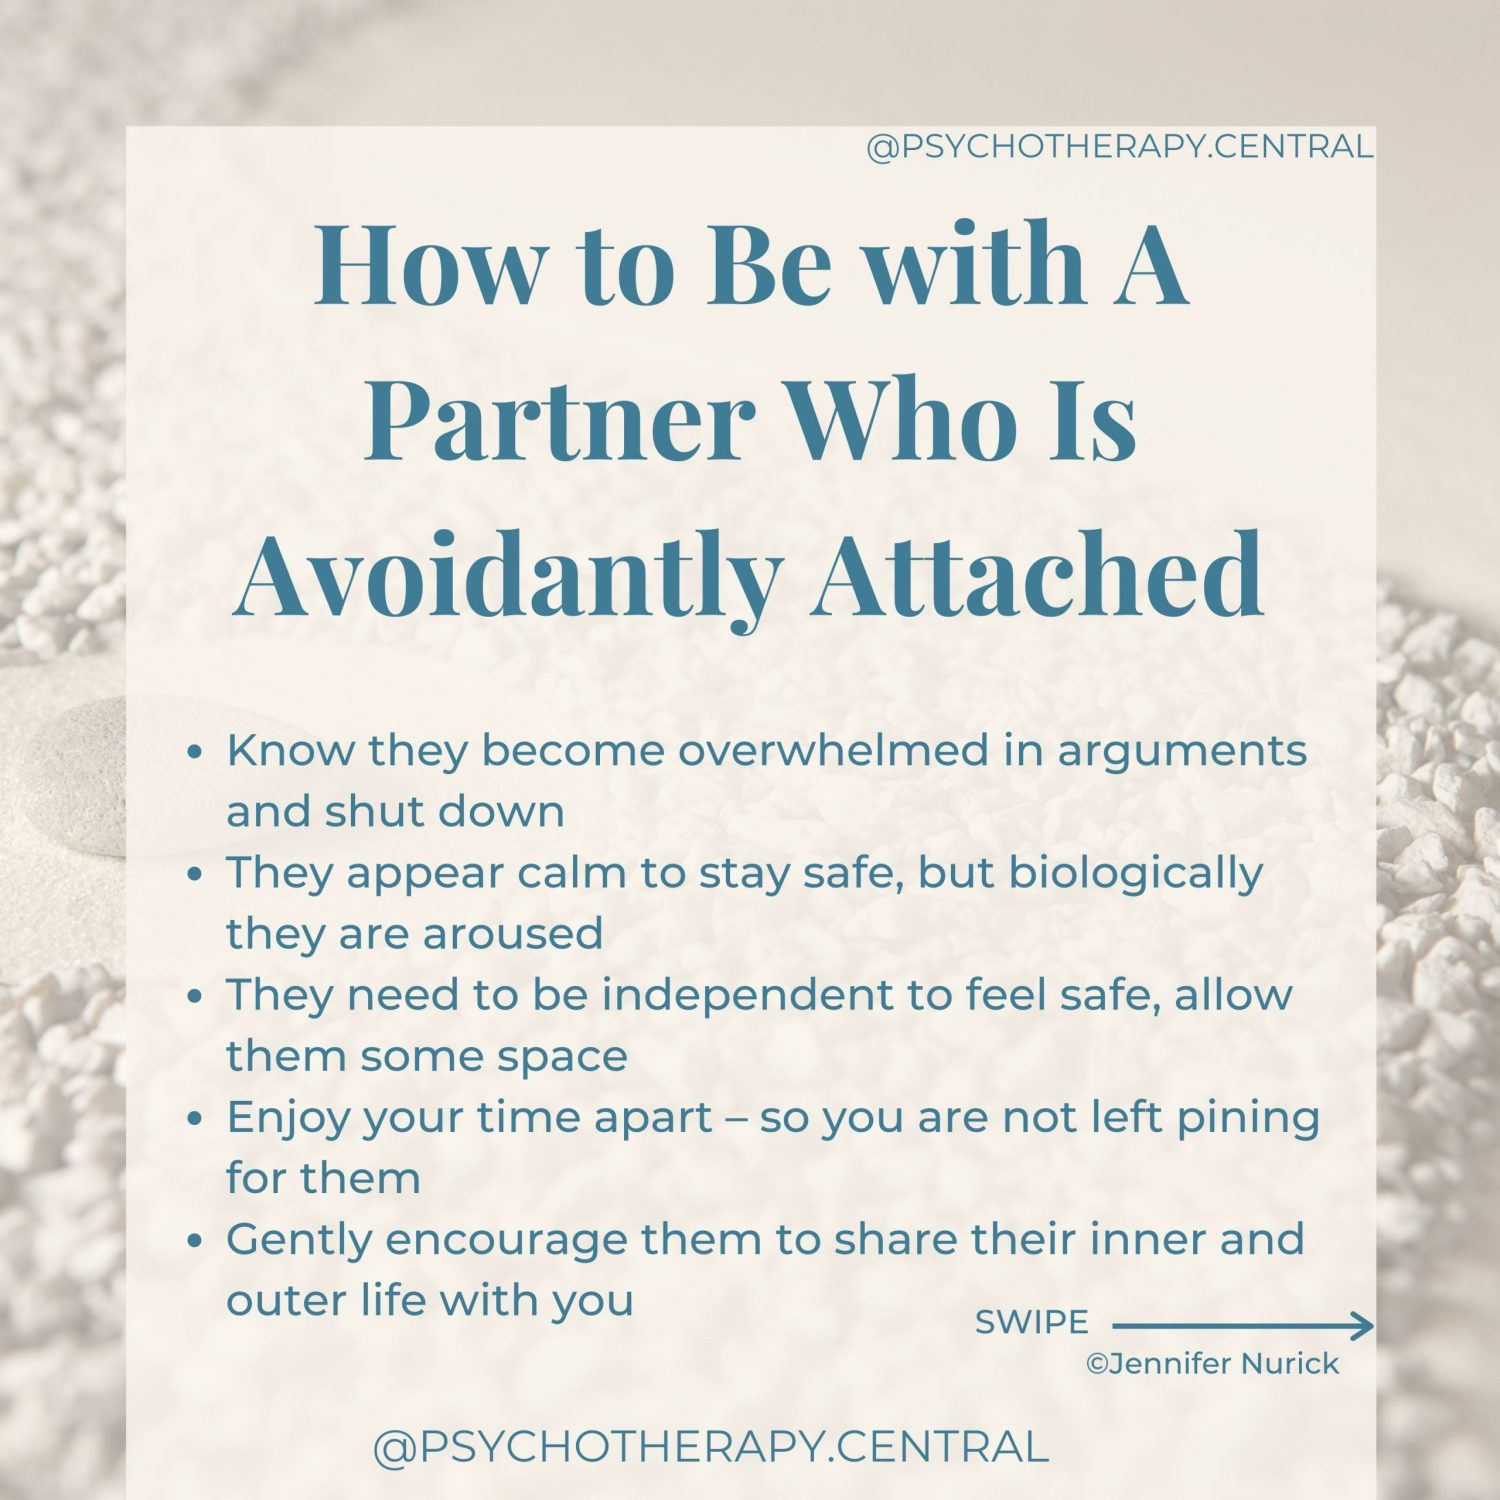 How to Be with A Partner Who Is Avoidantly Attached